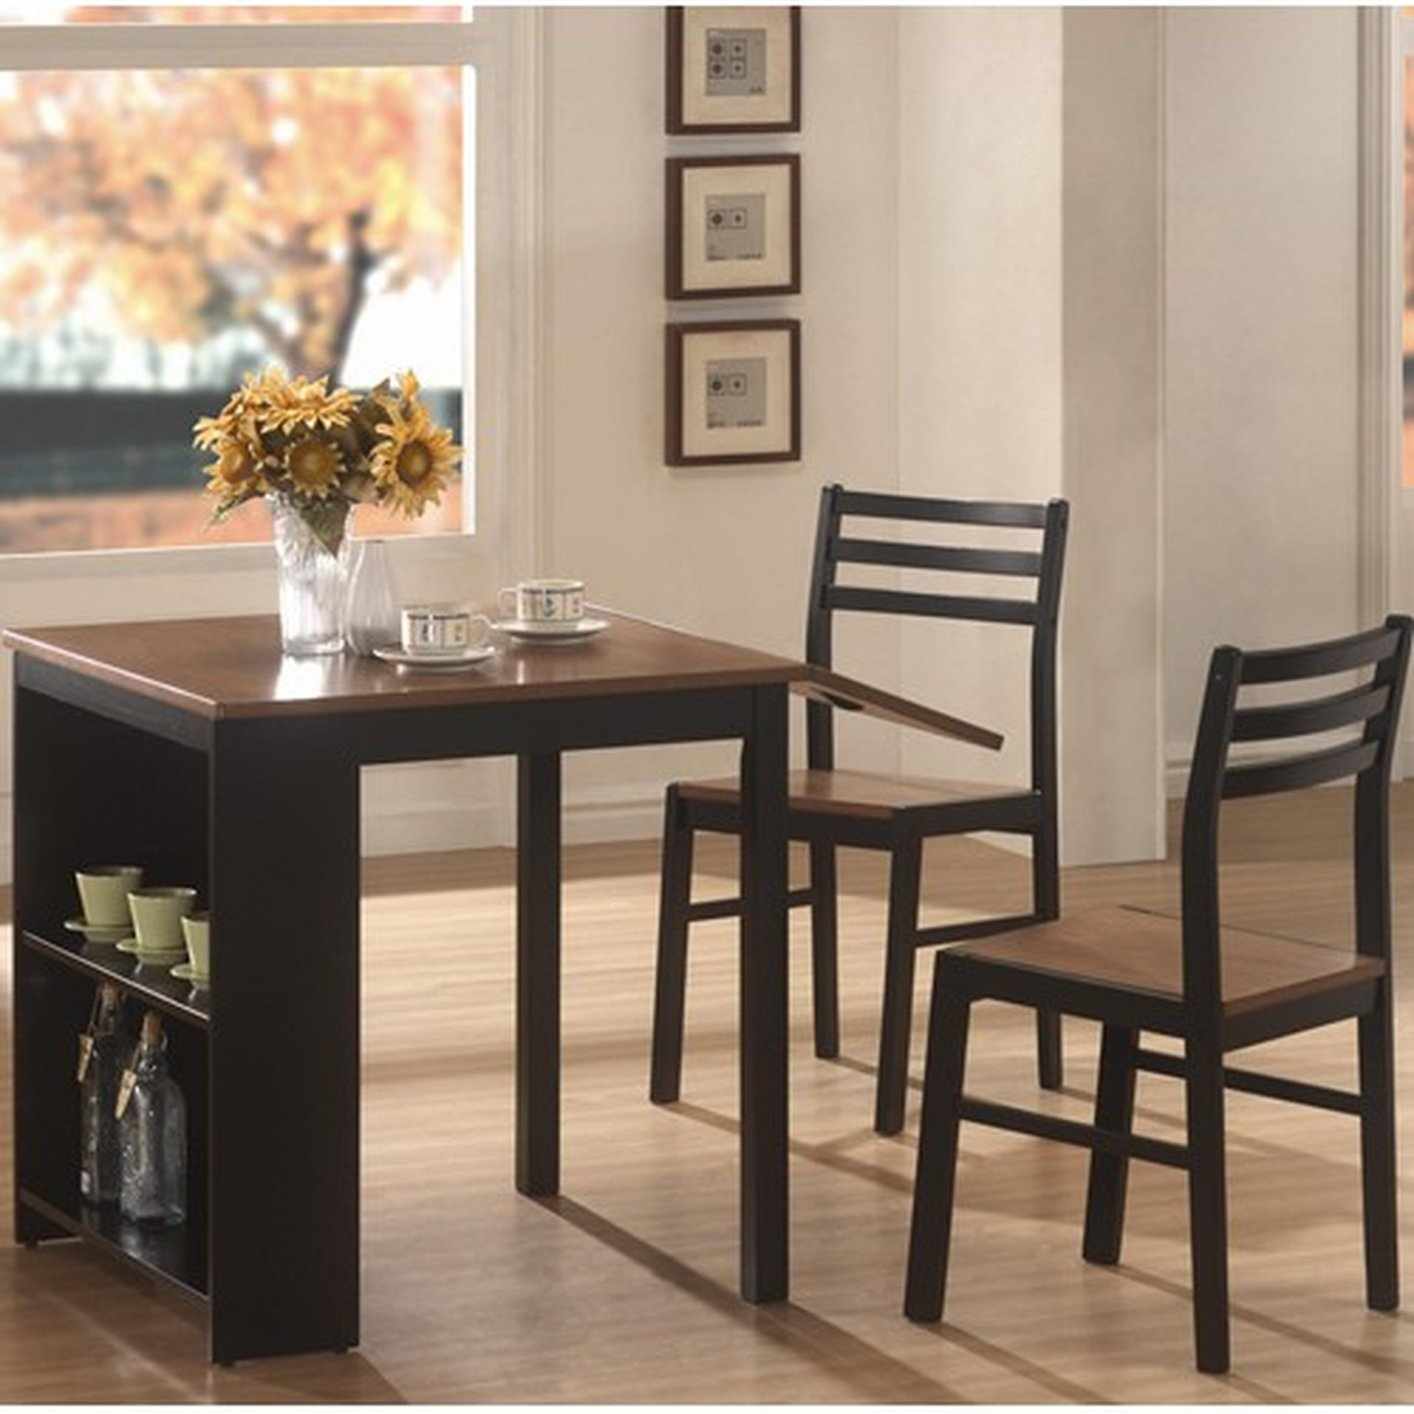 130015 black wood dining table and chair set steal a sofa furniture